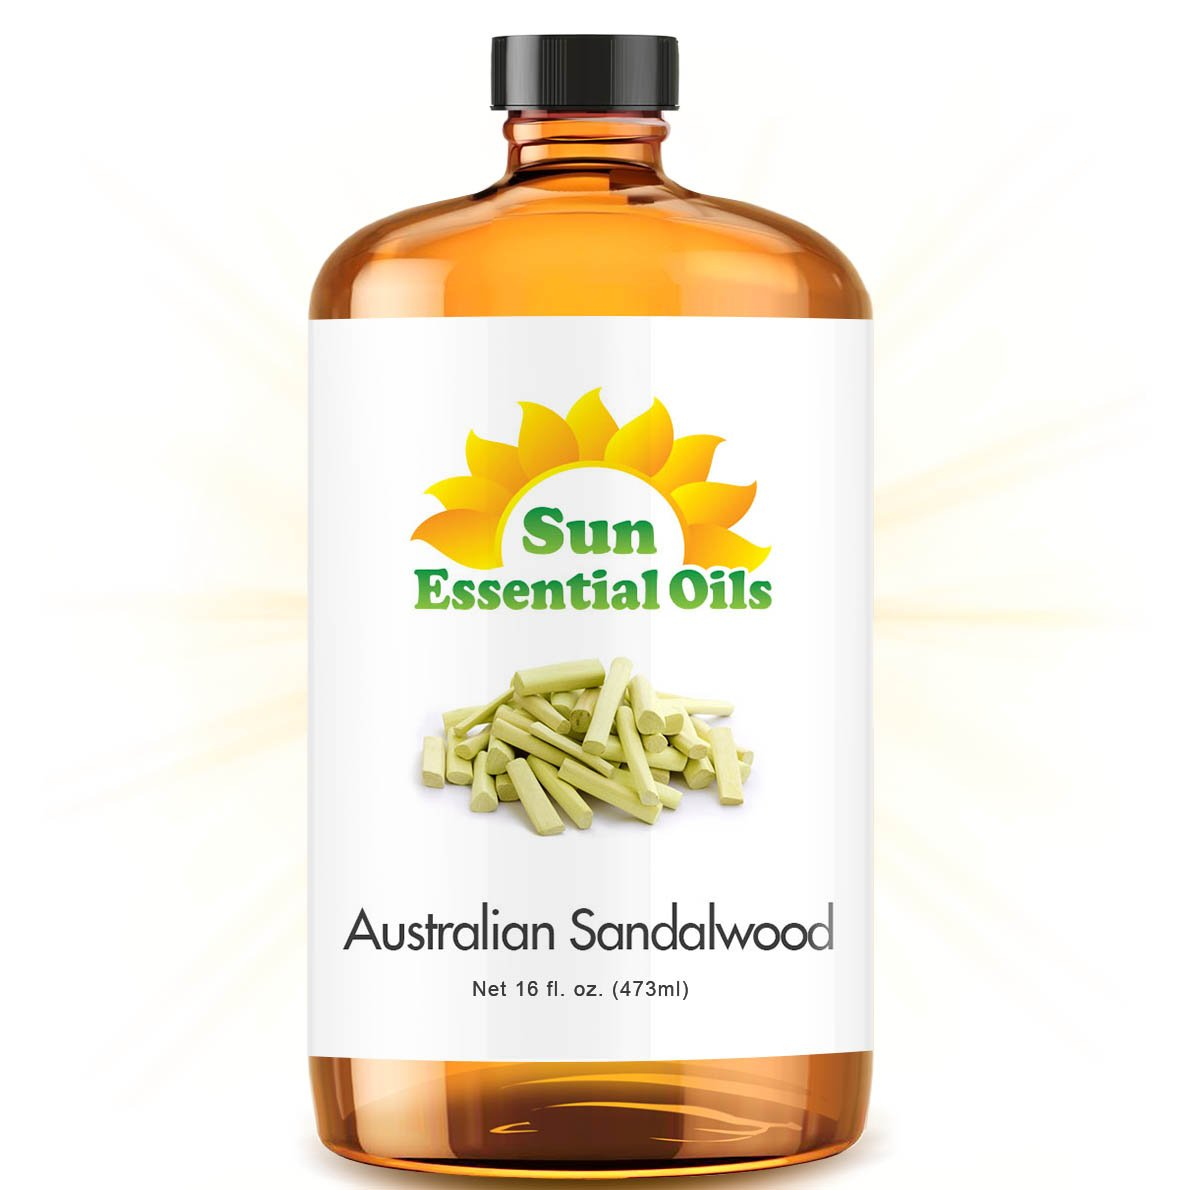 Bulk Sandalwood Oil - Ultra 16 Ounce - 100% Pure Essential Oil (Best 16 fl oz / 472ml) - Sun Essential